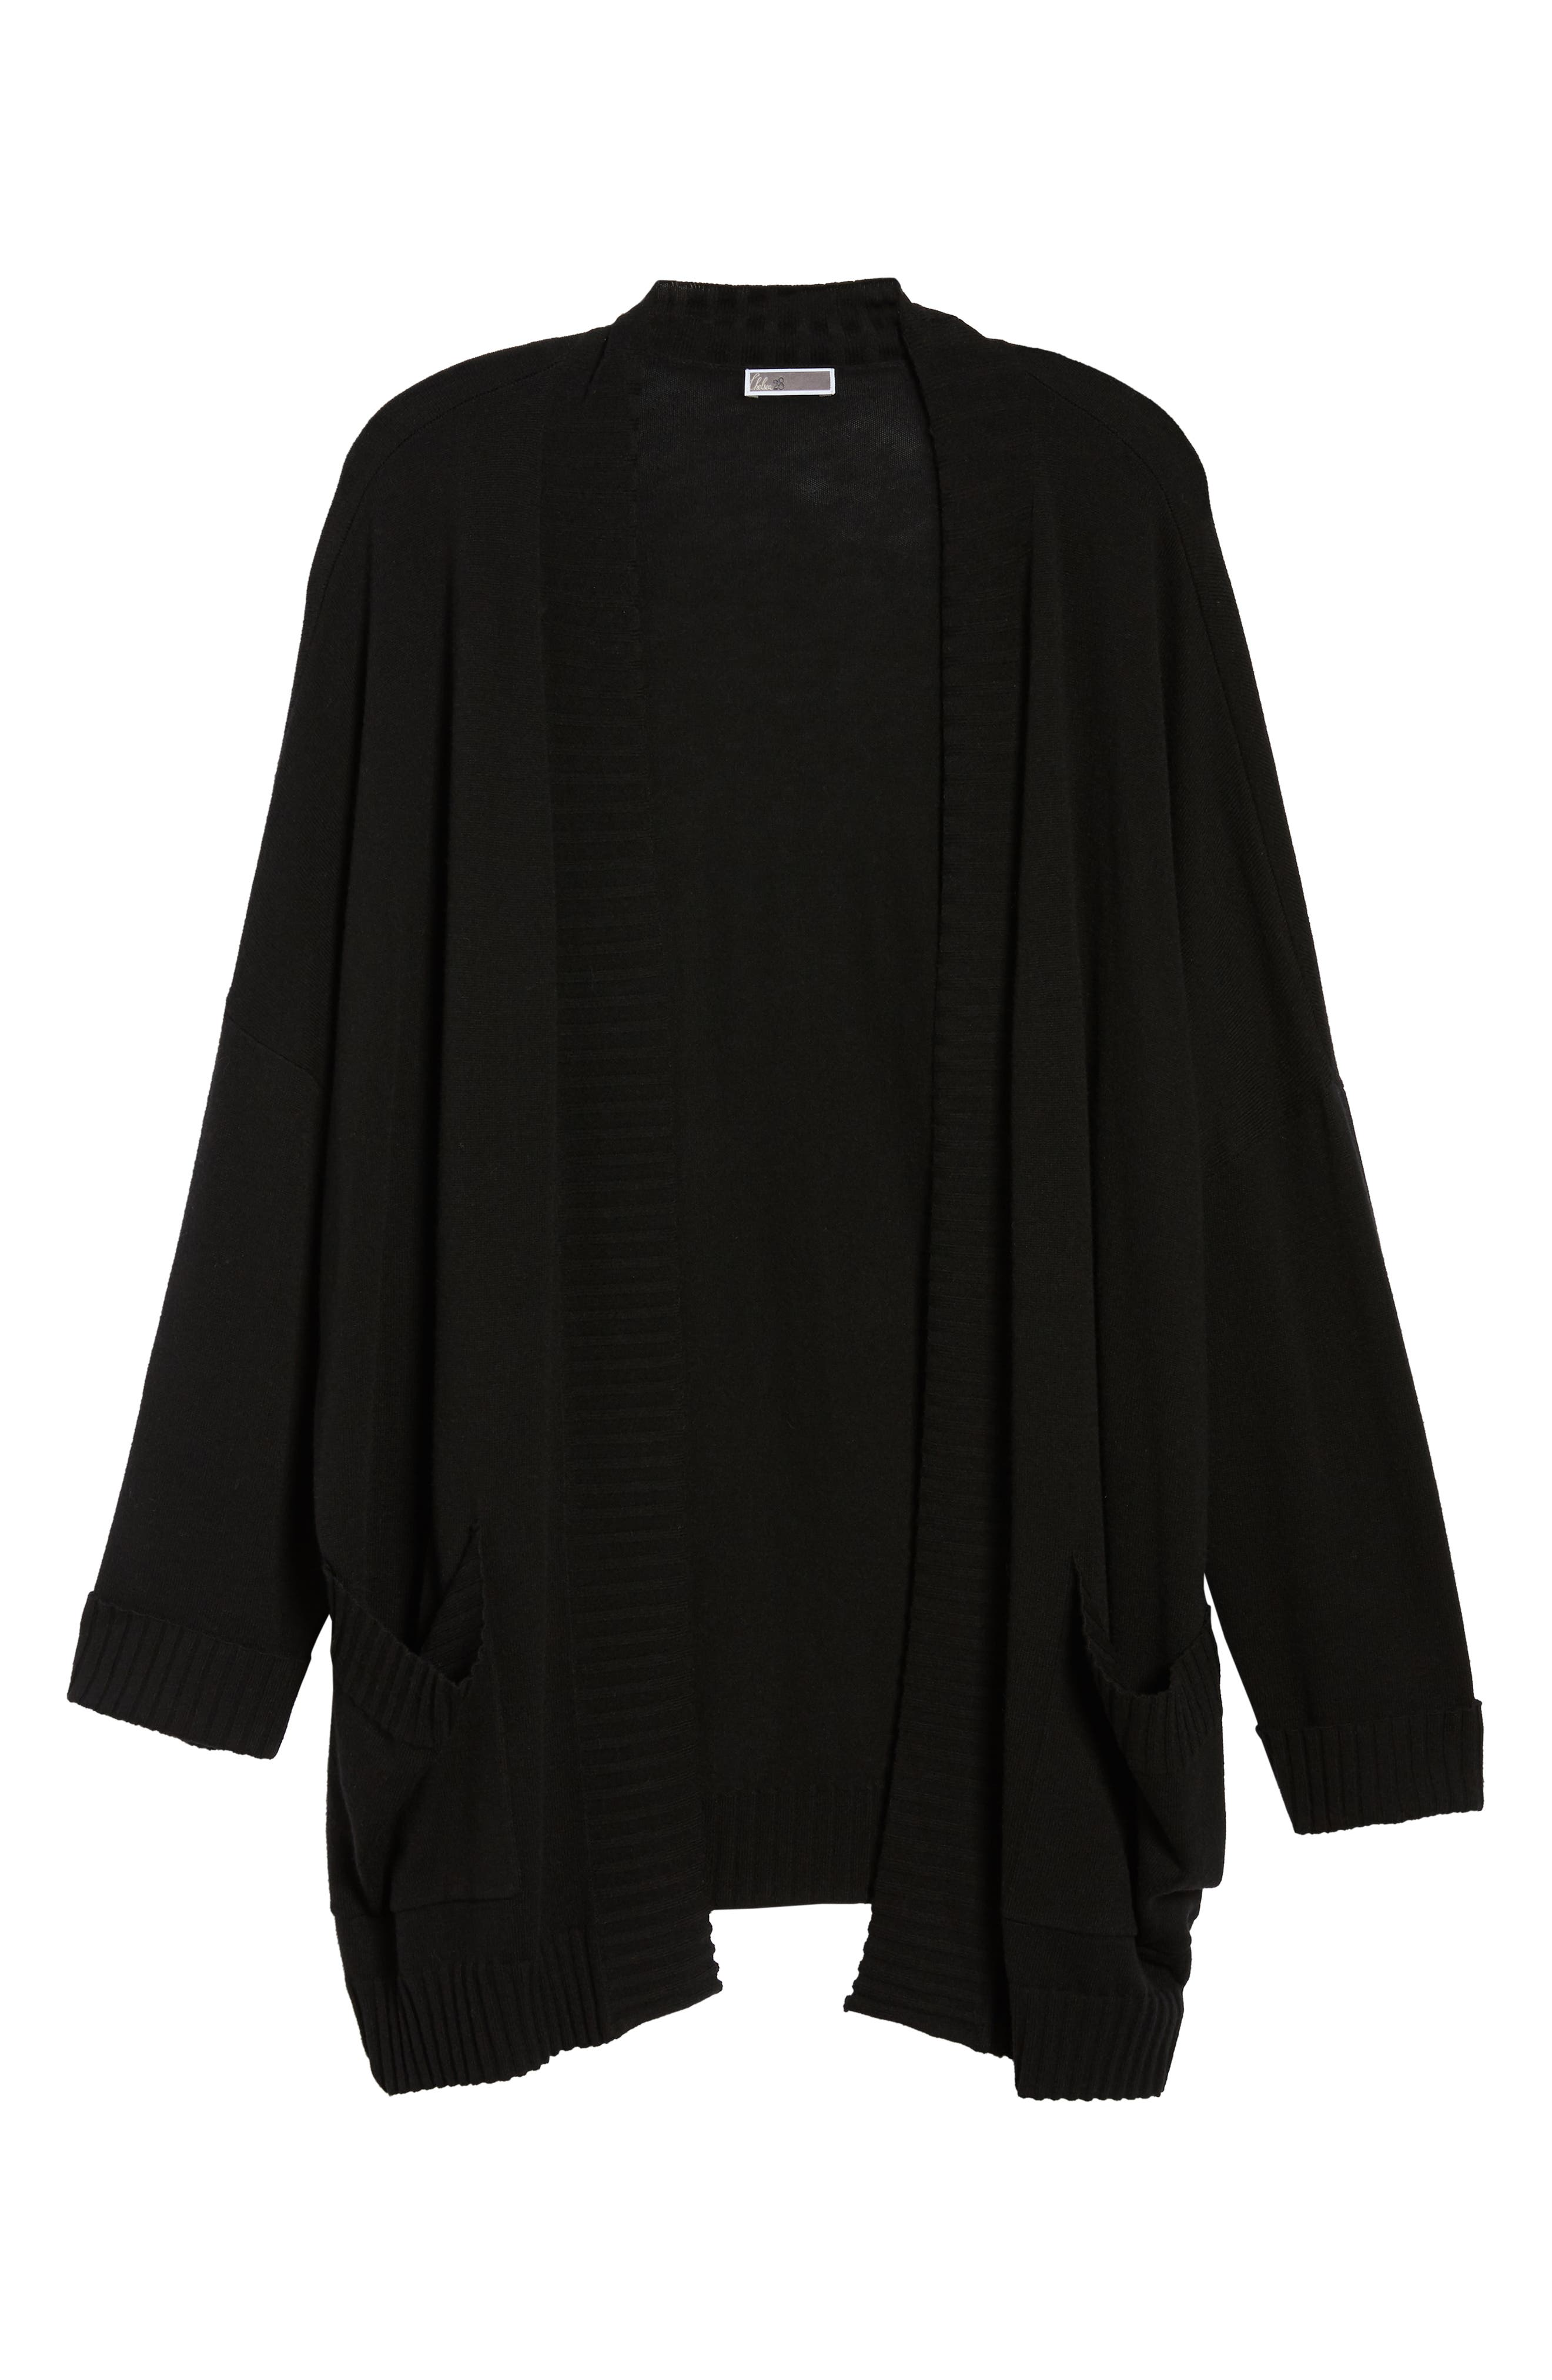 Oversize Open Cardigan,                             Alternate thumbnail 7, color,                             001